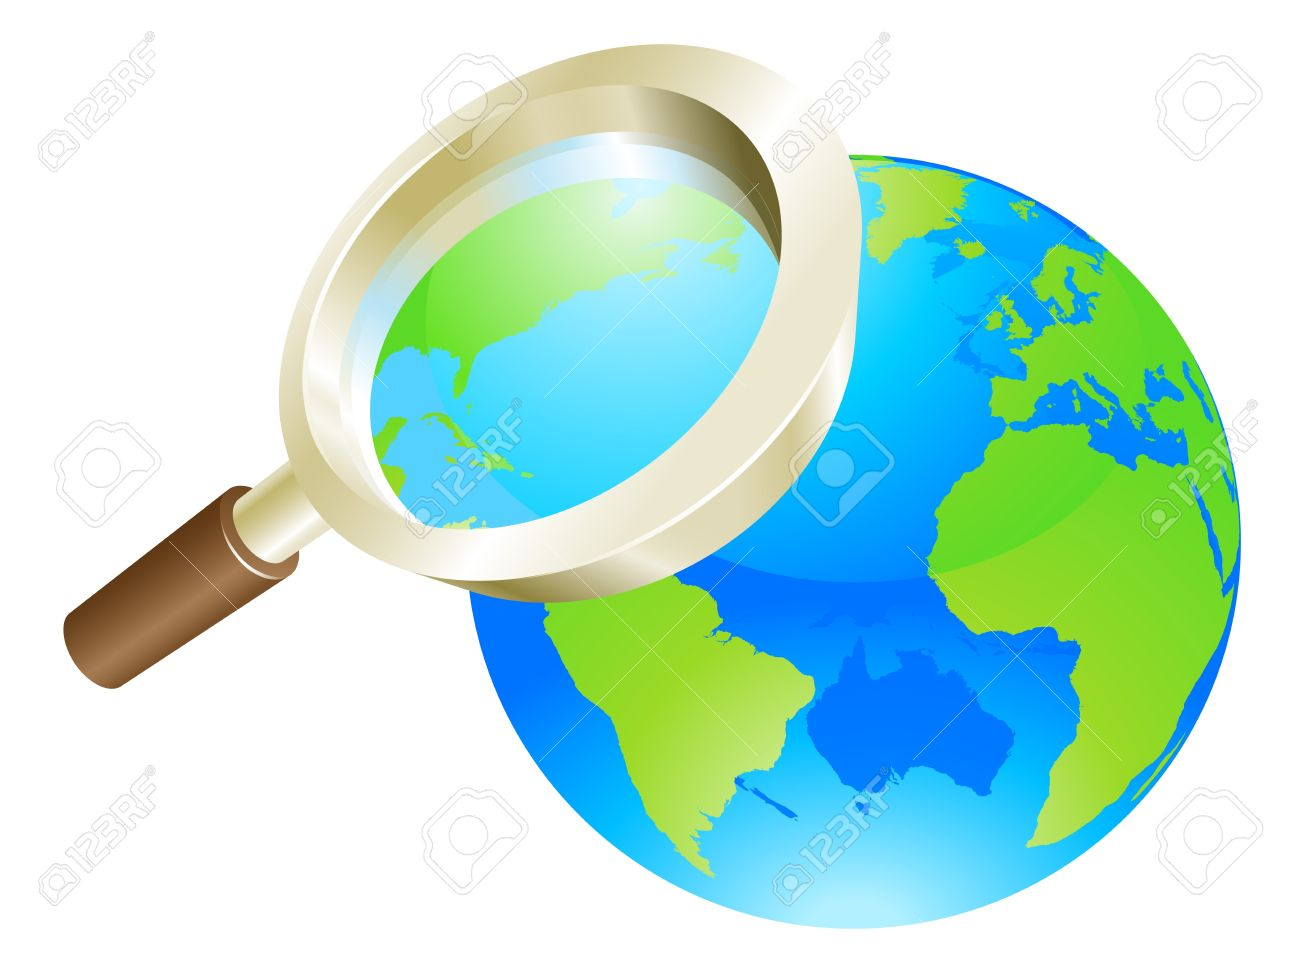 Magnifying Glass Zooming On World Earth Globe Concept Illustration.